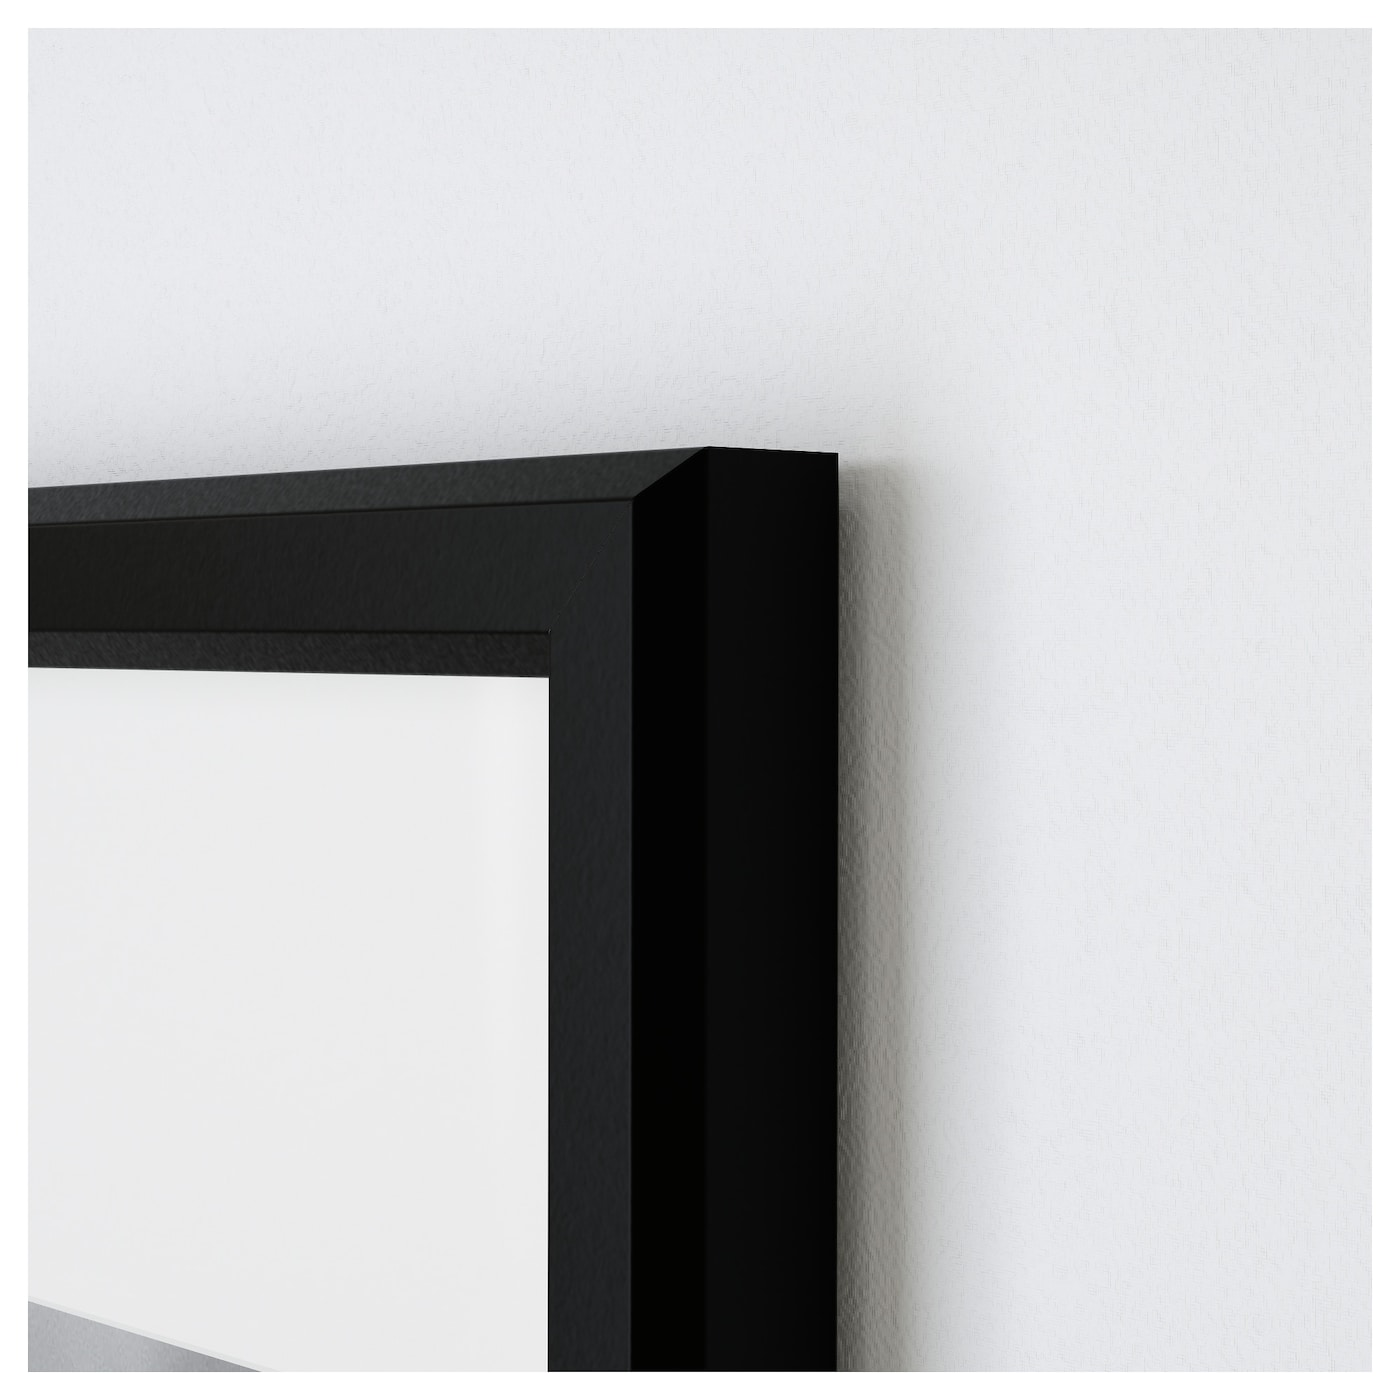 IKEA GUNNABO frame Can be hung horizontally or vertically to fit in the space available.